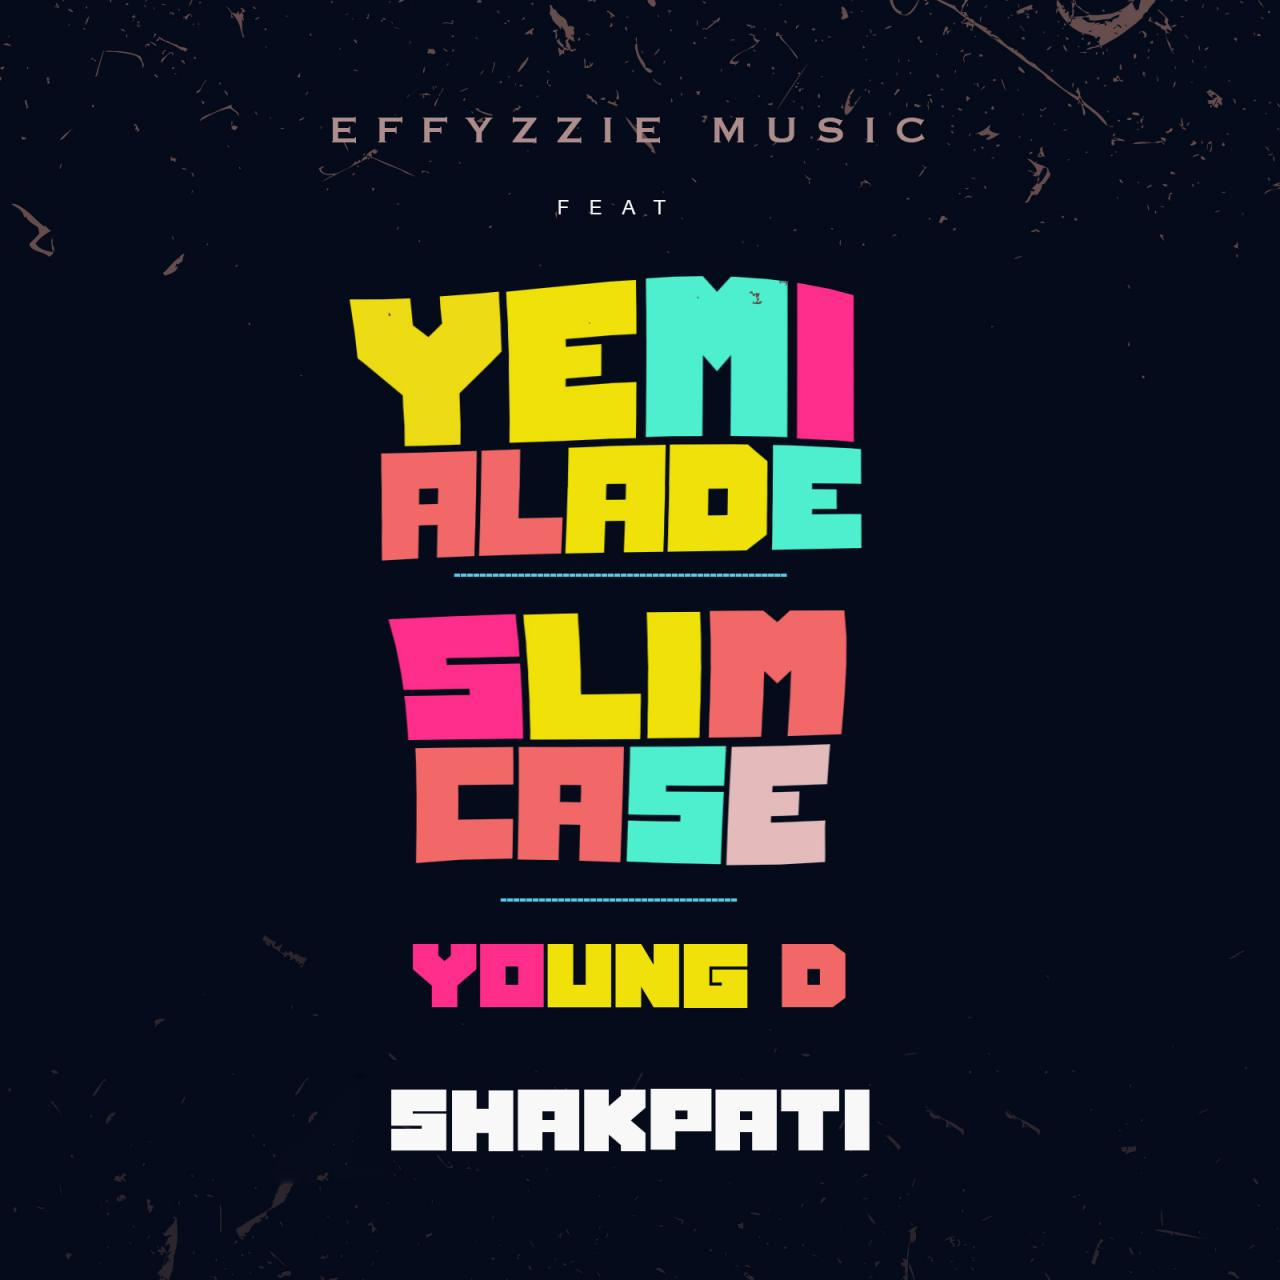 effyzzie music shakpati ft yemi alade slimcase young d